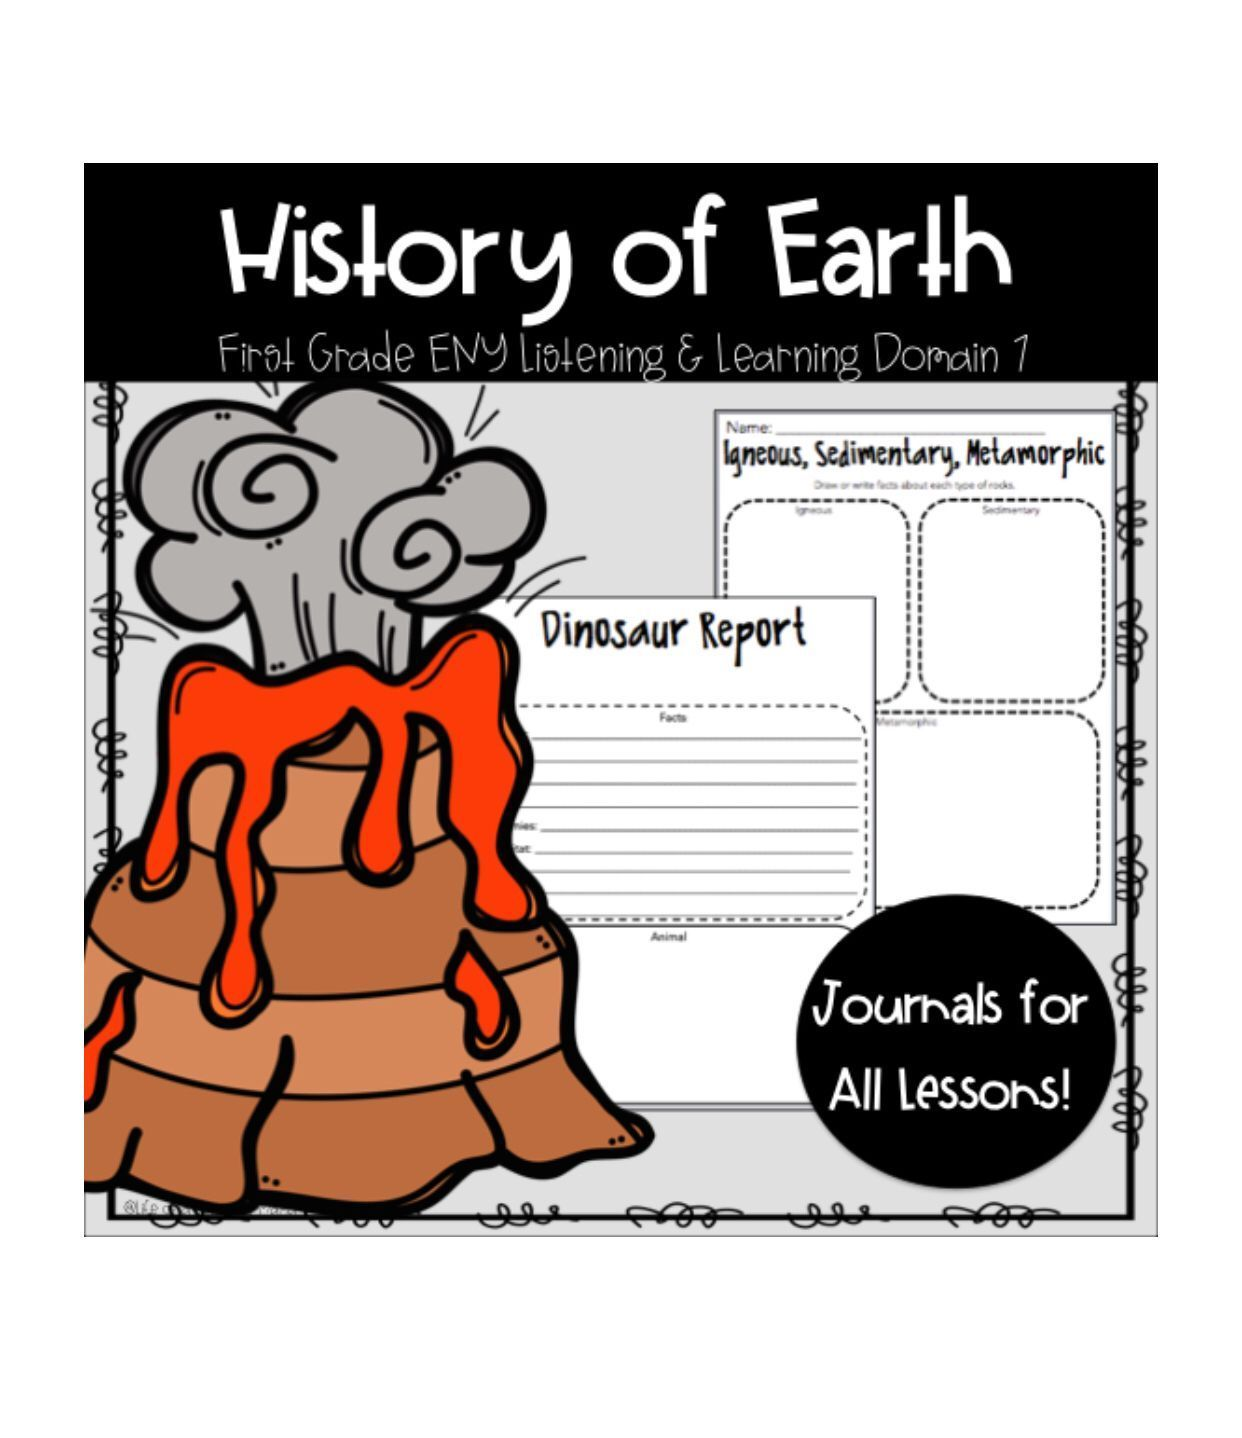 History of Earth #historyofdinosaurs My History Of Earth unit goes with the Engage New York ELA Domain 7. There are several worksheets for each day of the module.  Some of the things in this packet are:  Venn Diagrams  Word Work  Dinosaur Research  Writing Prompts  Vocabulary  *This contains worksheets for all lesson!* #historyofdinosaurs History of Earth #historyofdinosaurs My History Of Earth unit goes with the Engage New York ELA Domain 7. There are several worksheets for each day of the modu #historyofdinosaurs